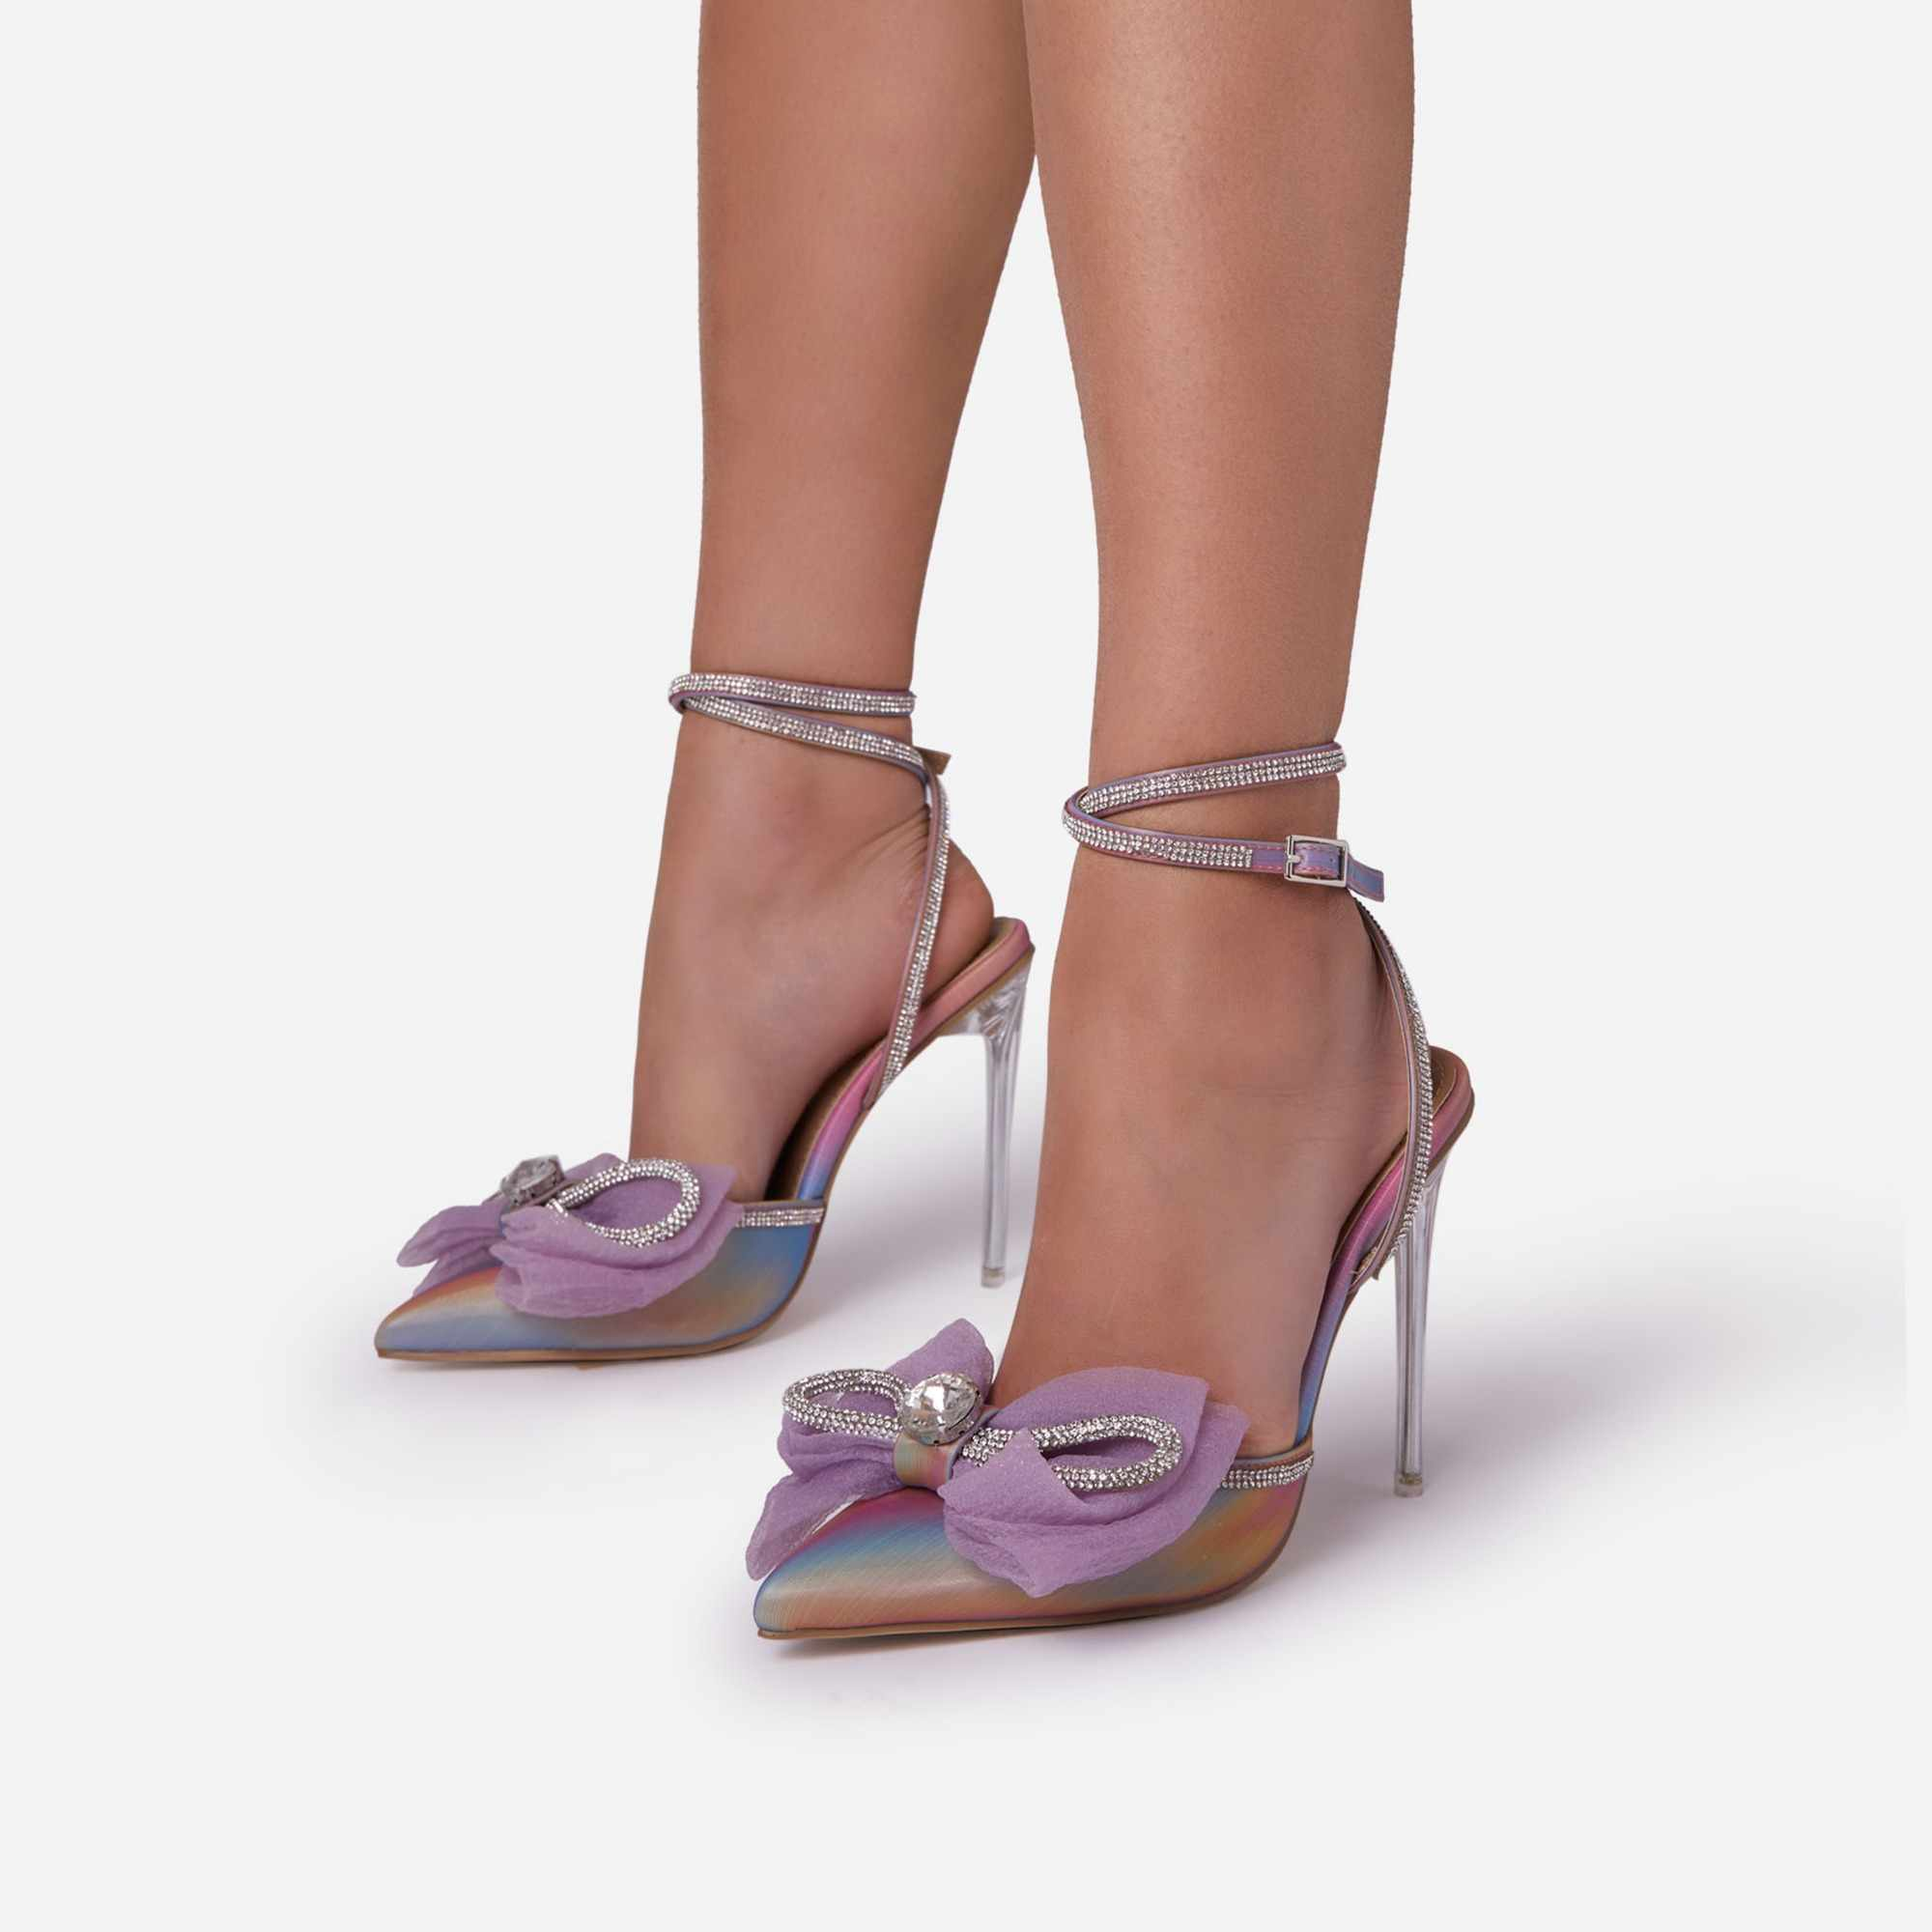 Chriselle Bow Detail Diamante Lace Up Clear Perspex Heel In Rainbow Iridescent Faux Leather